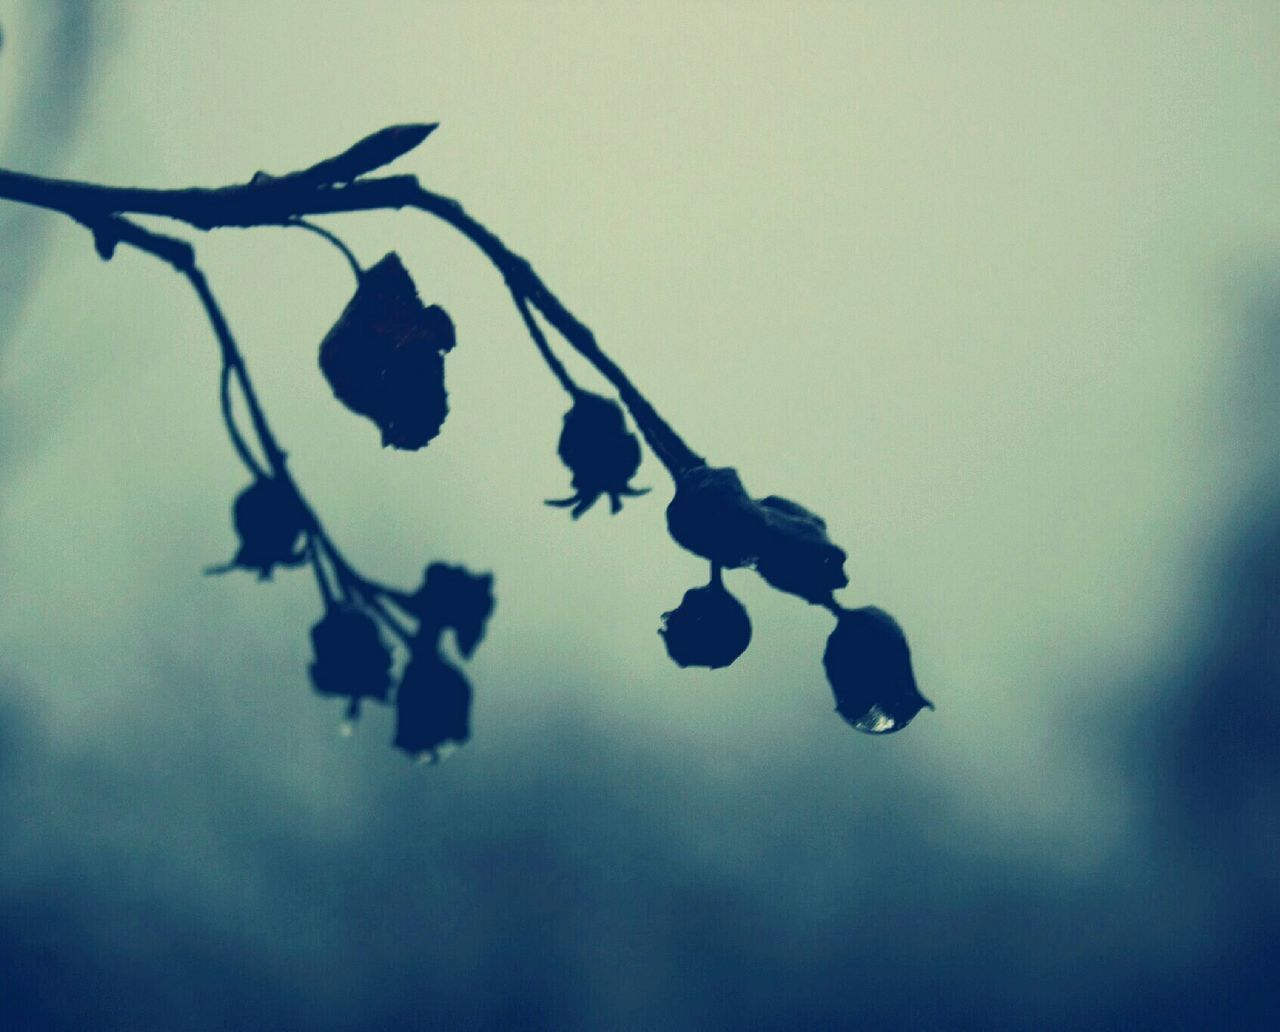 Close-Up Of Silhouette Flowers Growing On Tree